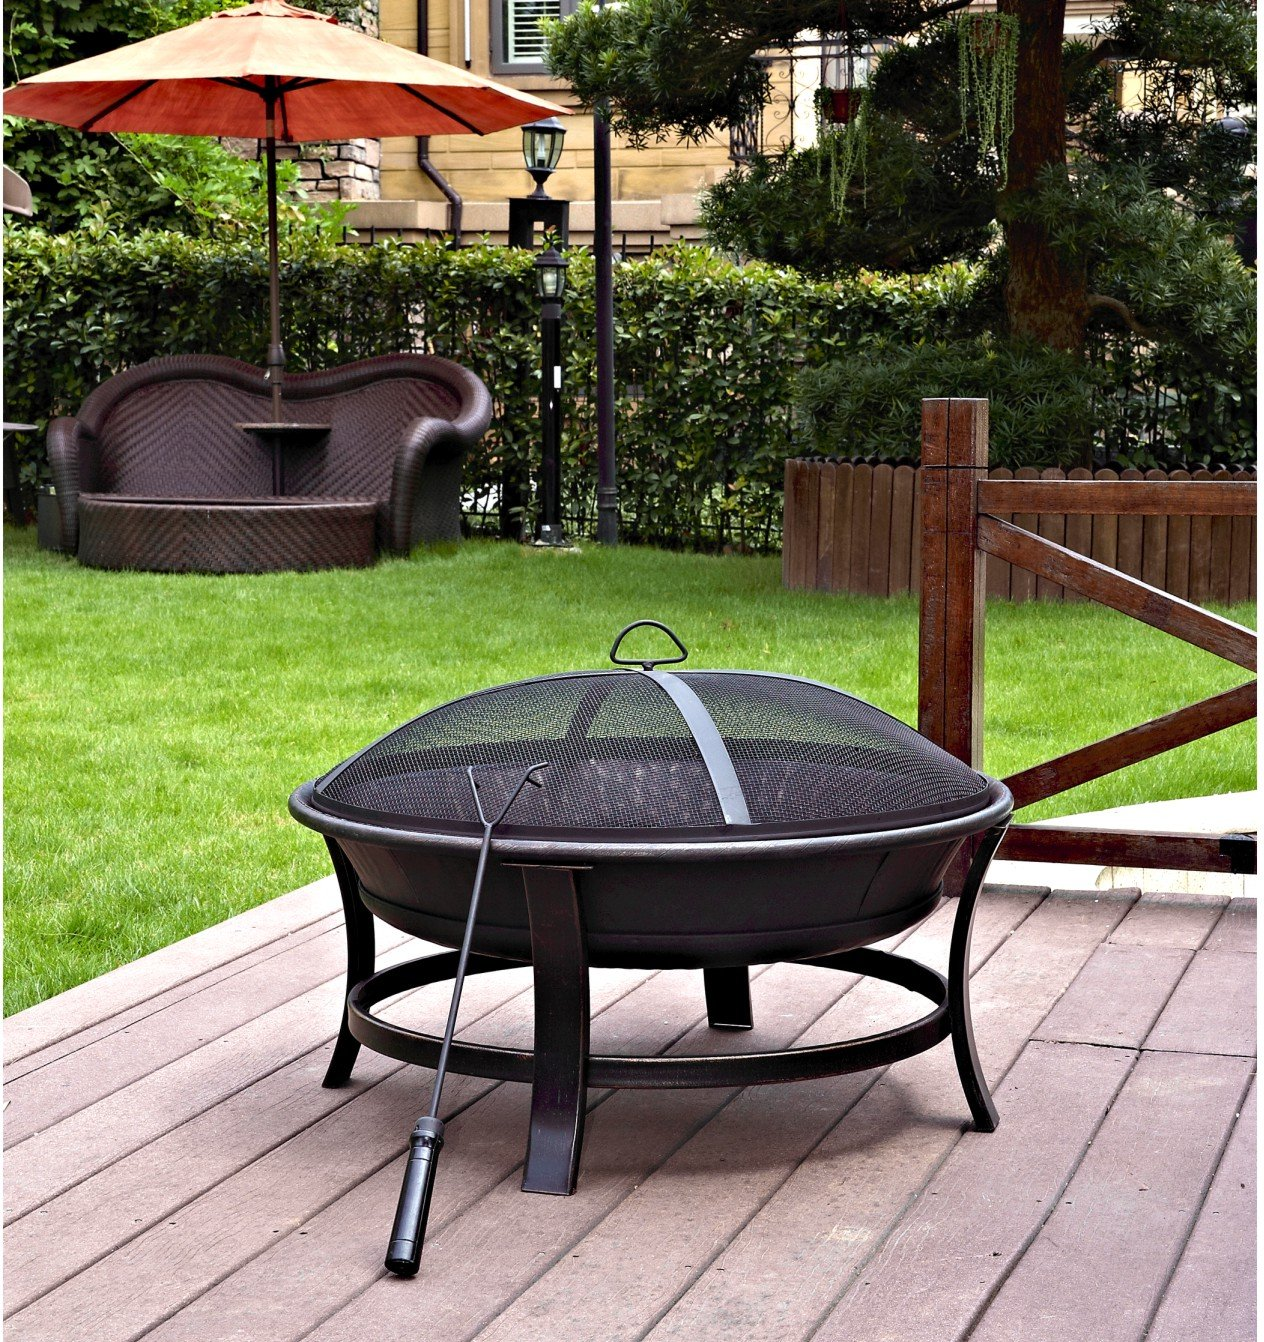 Jeco FP006 Windsor Outdoor, Multicolored - Made Of Sturdy Steel Construction Sturdy Four Leg Support For Fire Bowl To Provide Stability. Country Of Origin Is China - patio, outdoor-decor, fire-pits-outdoor-fireplaces - 91H3091bxUL -